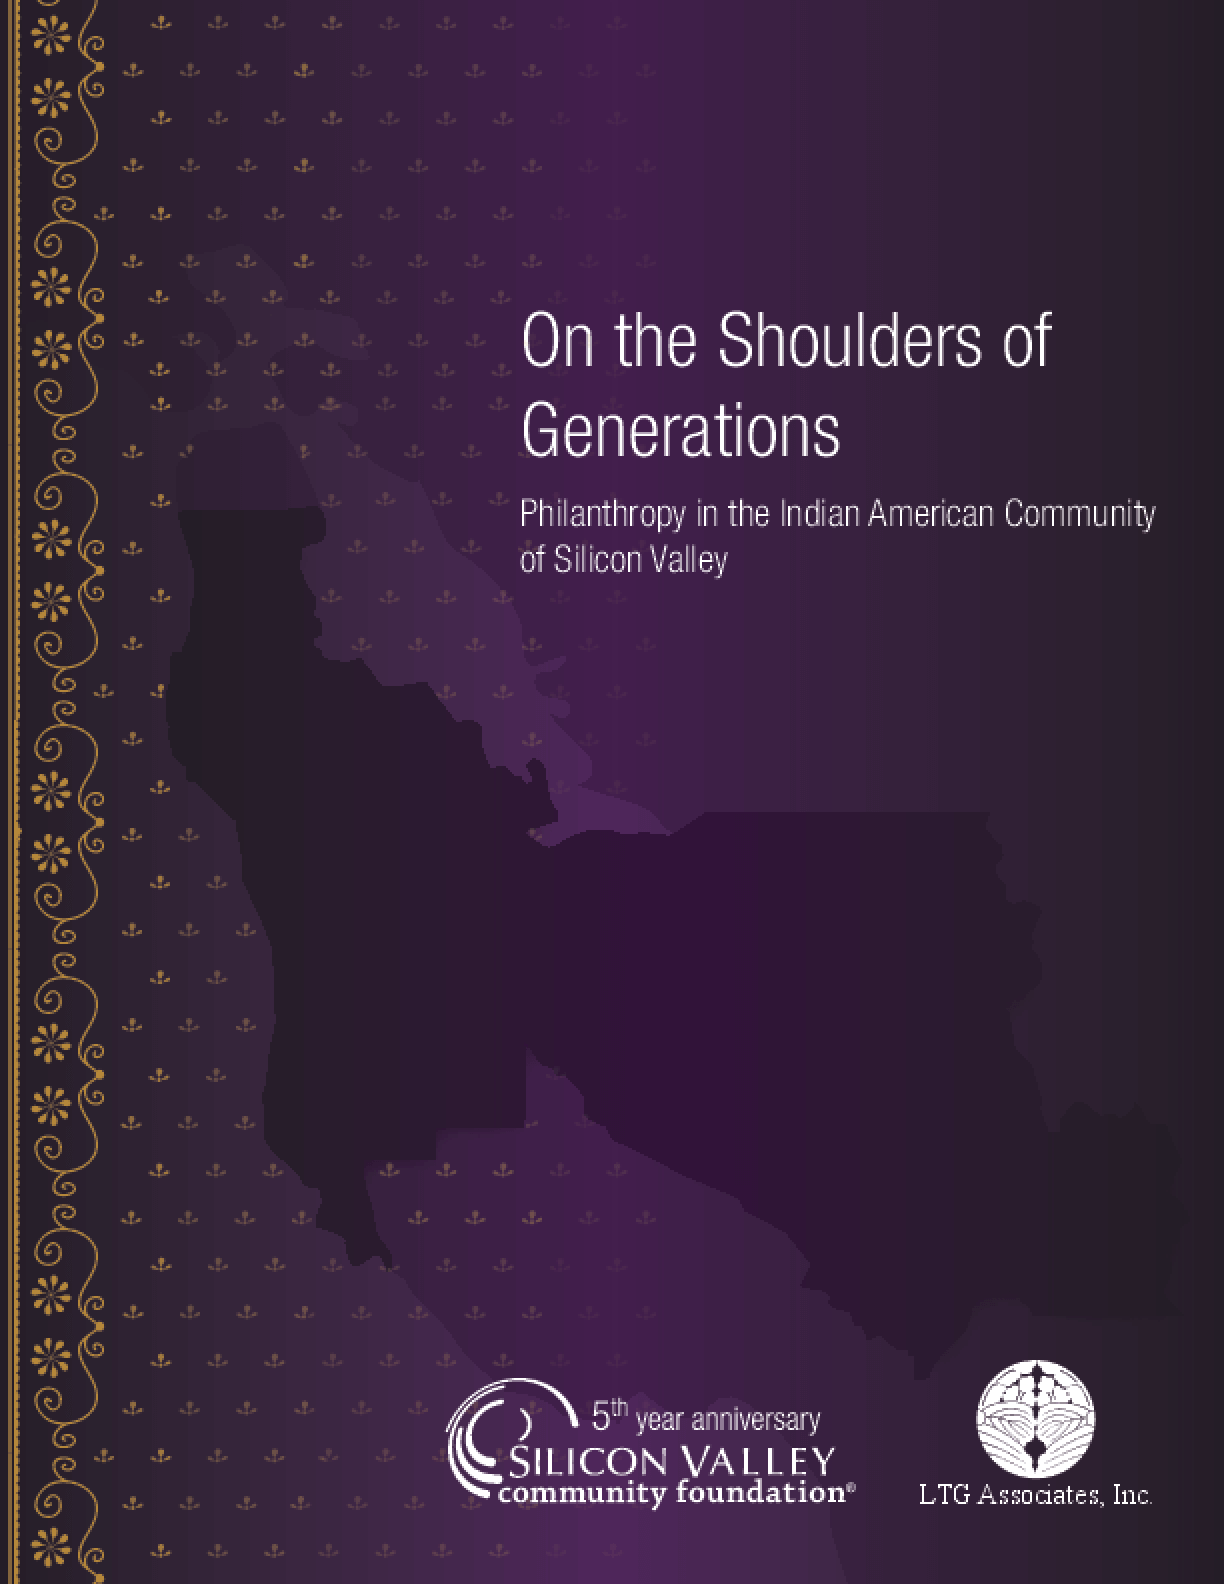 On the Shoulders of Generations: Philanthropy in the Indian American Community of Silicon Valley